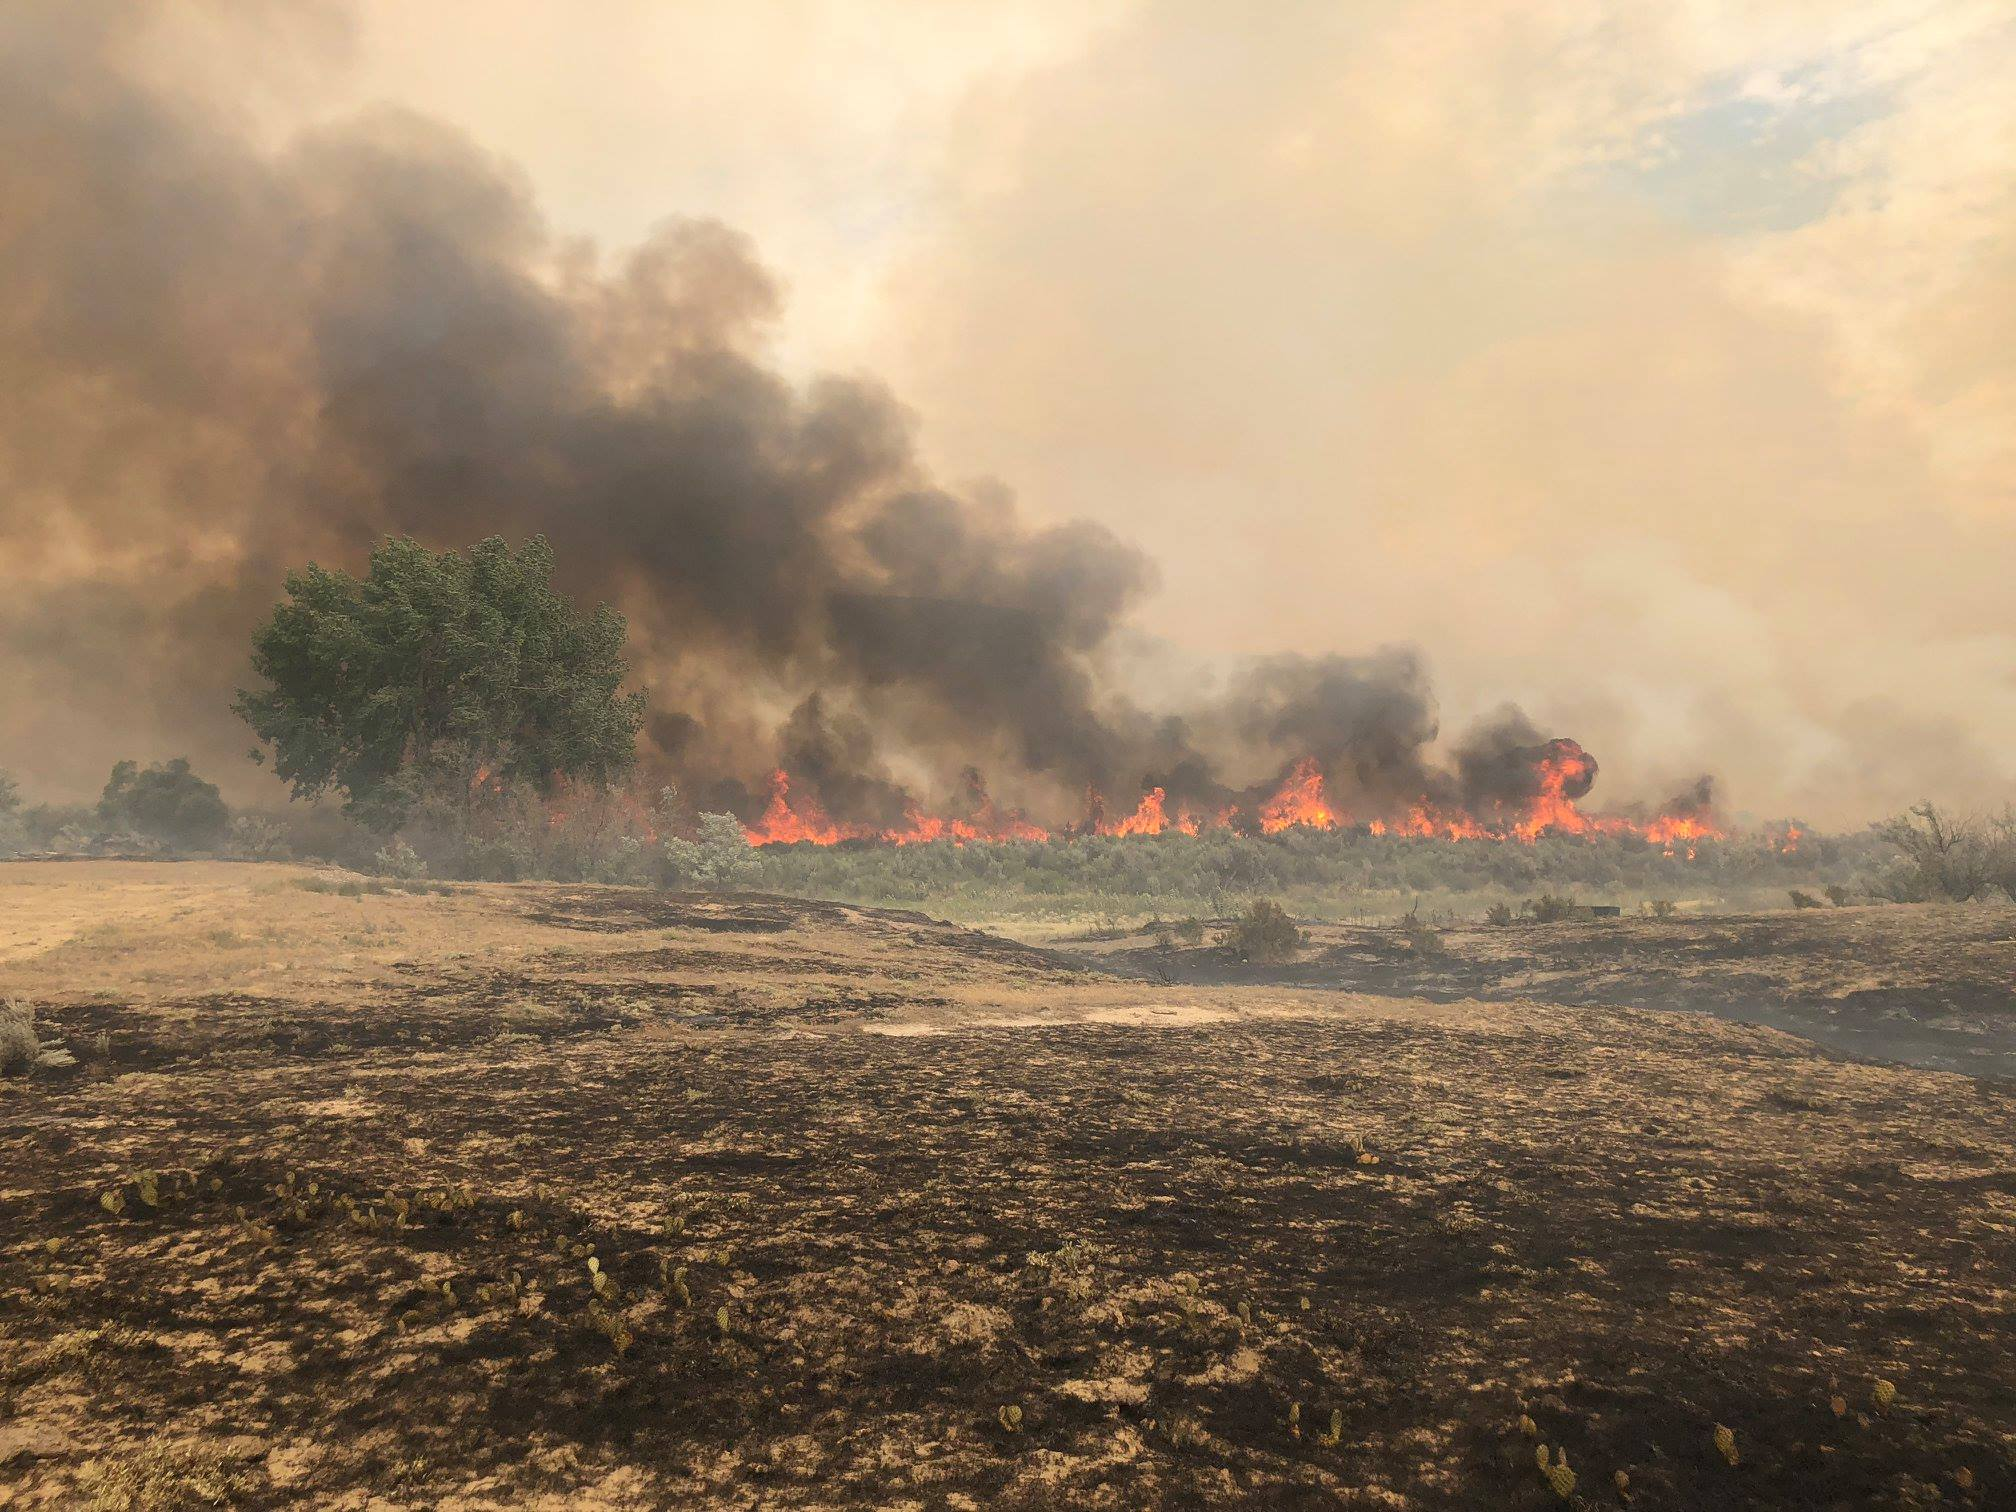 Terek Fire Near Worland Estimated at 40,000+ Acres